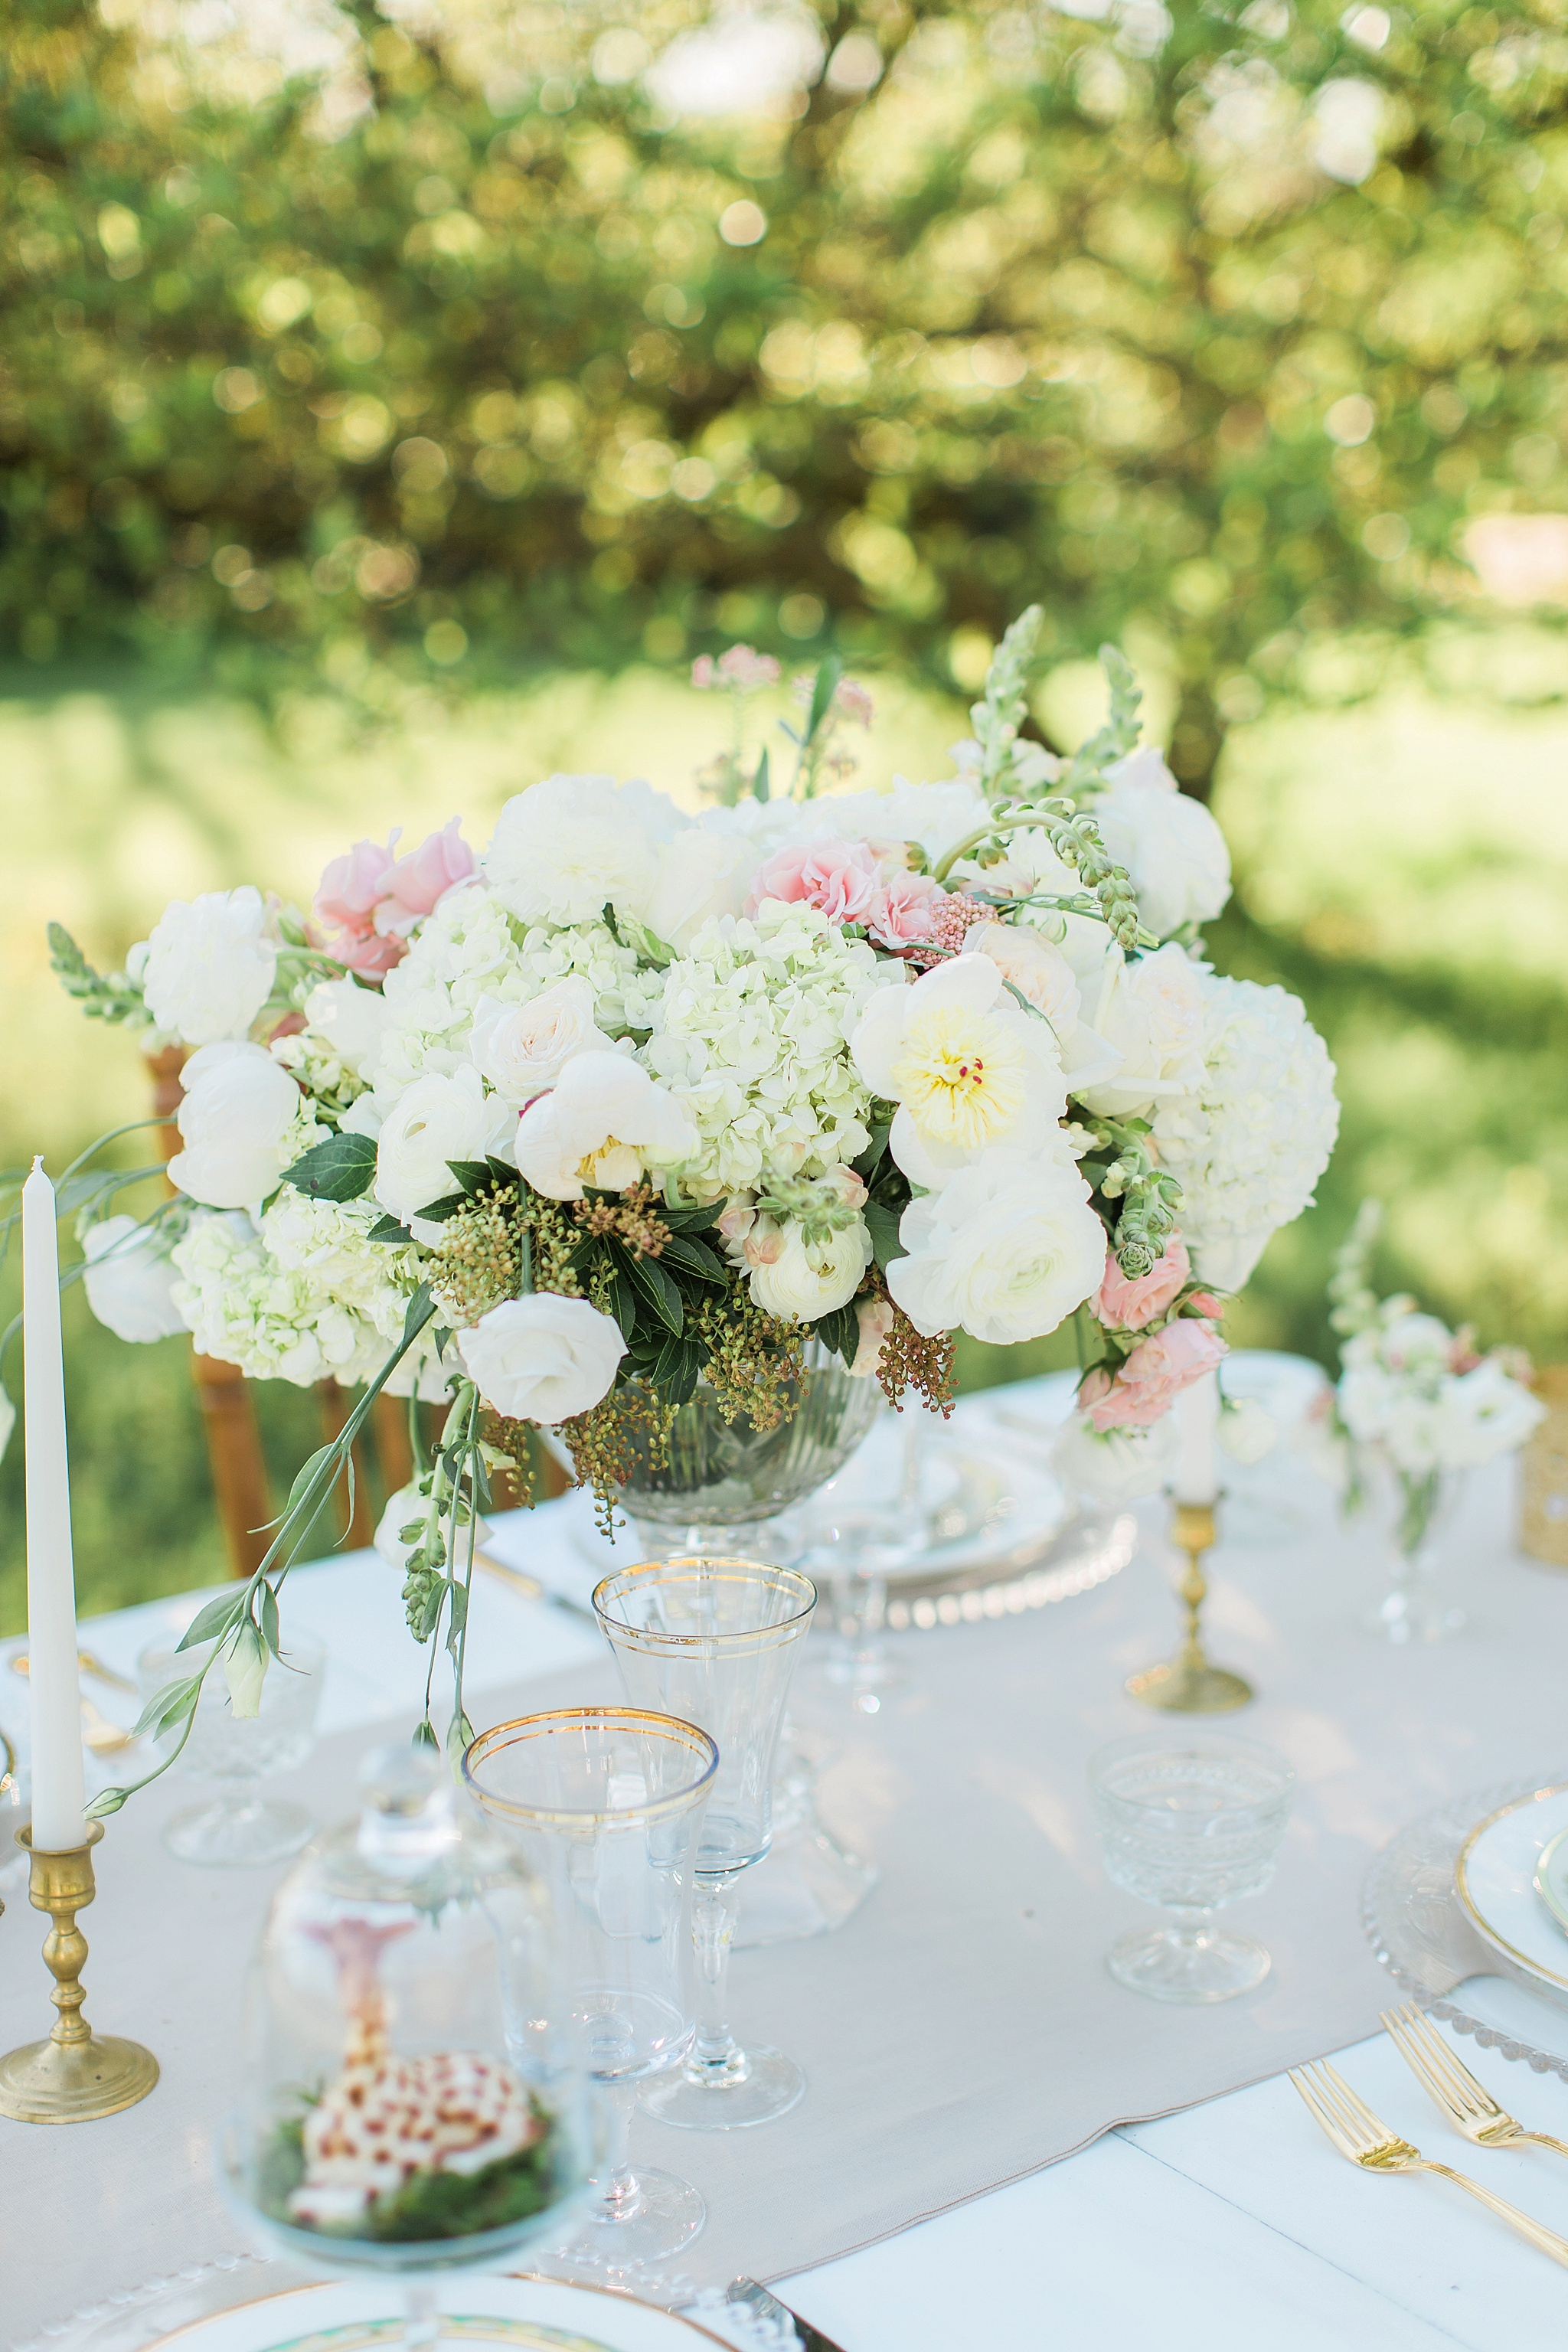 Soft and romantic wedding florals